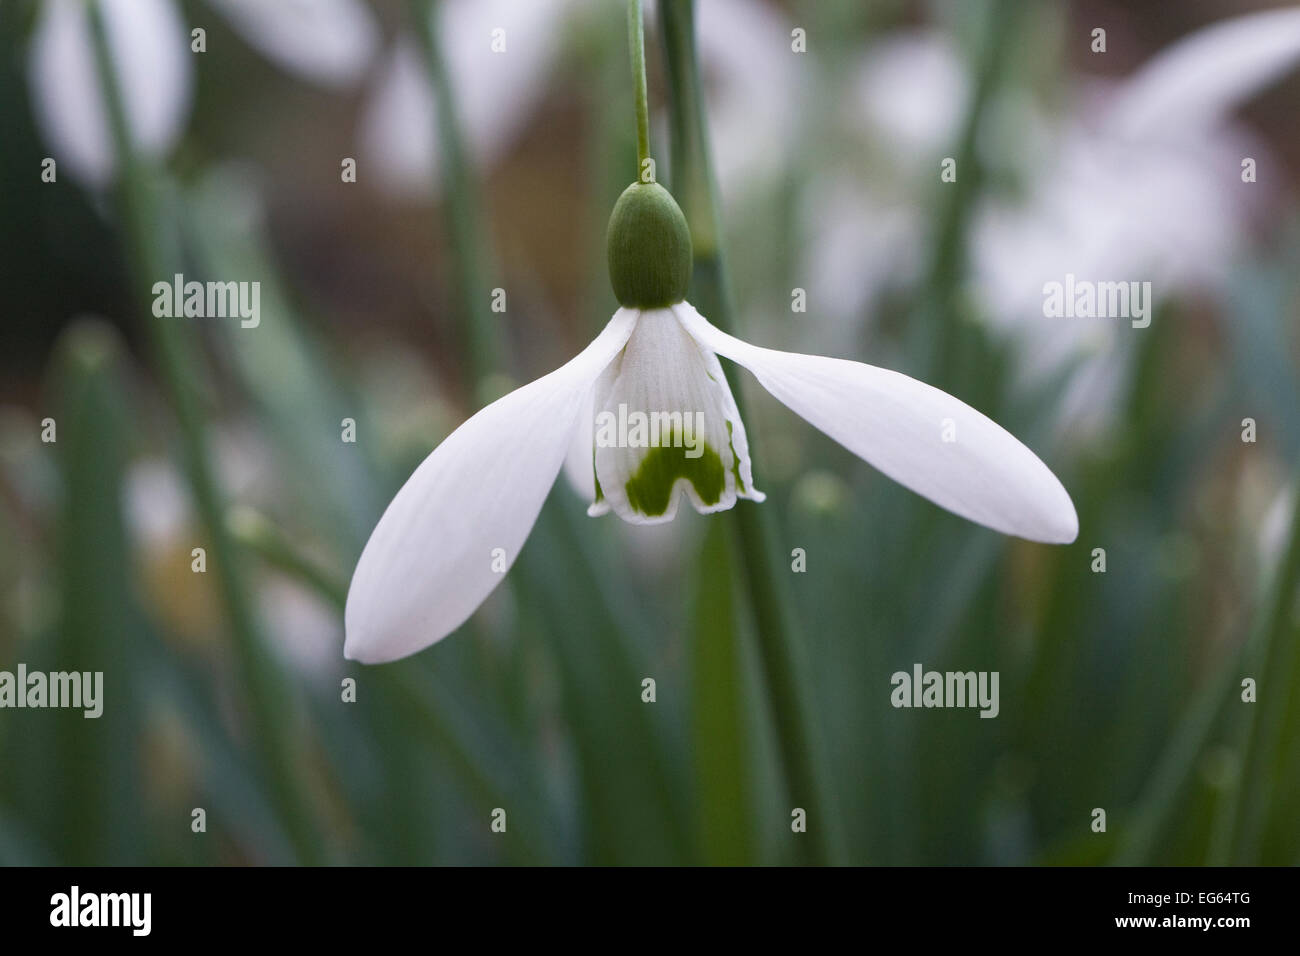 Galanthus Magnet. Species snowdrop growing in a woodland garden. - Stock Image